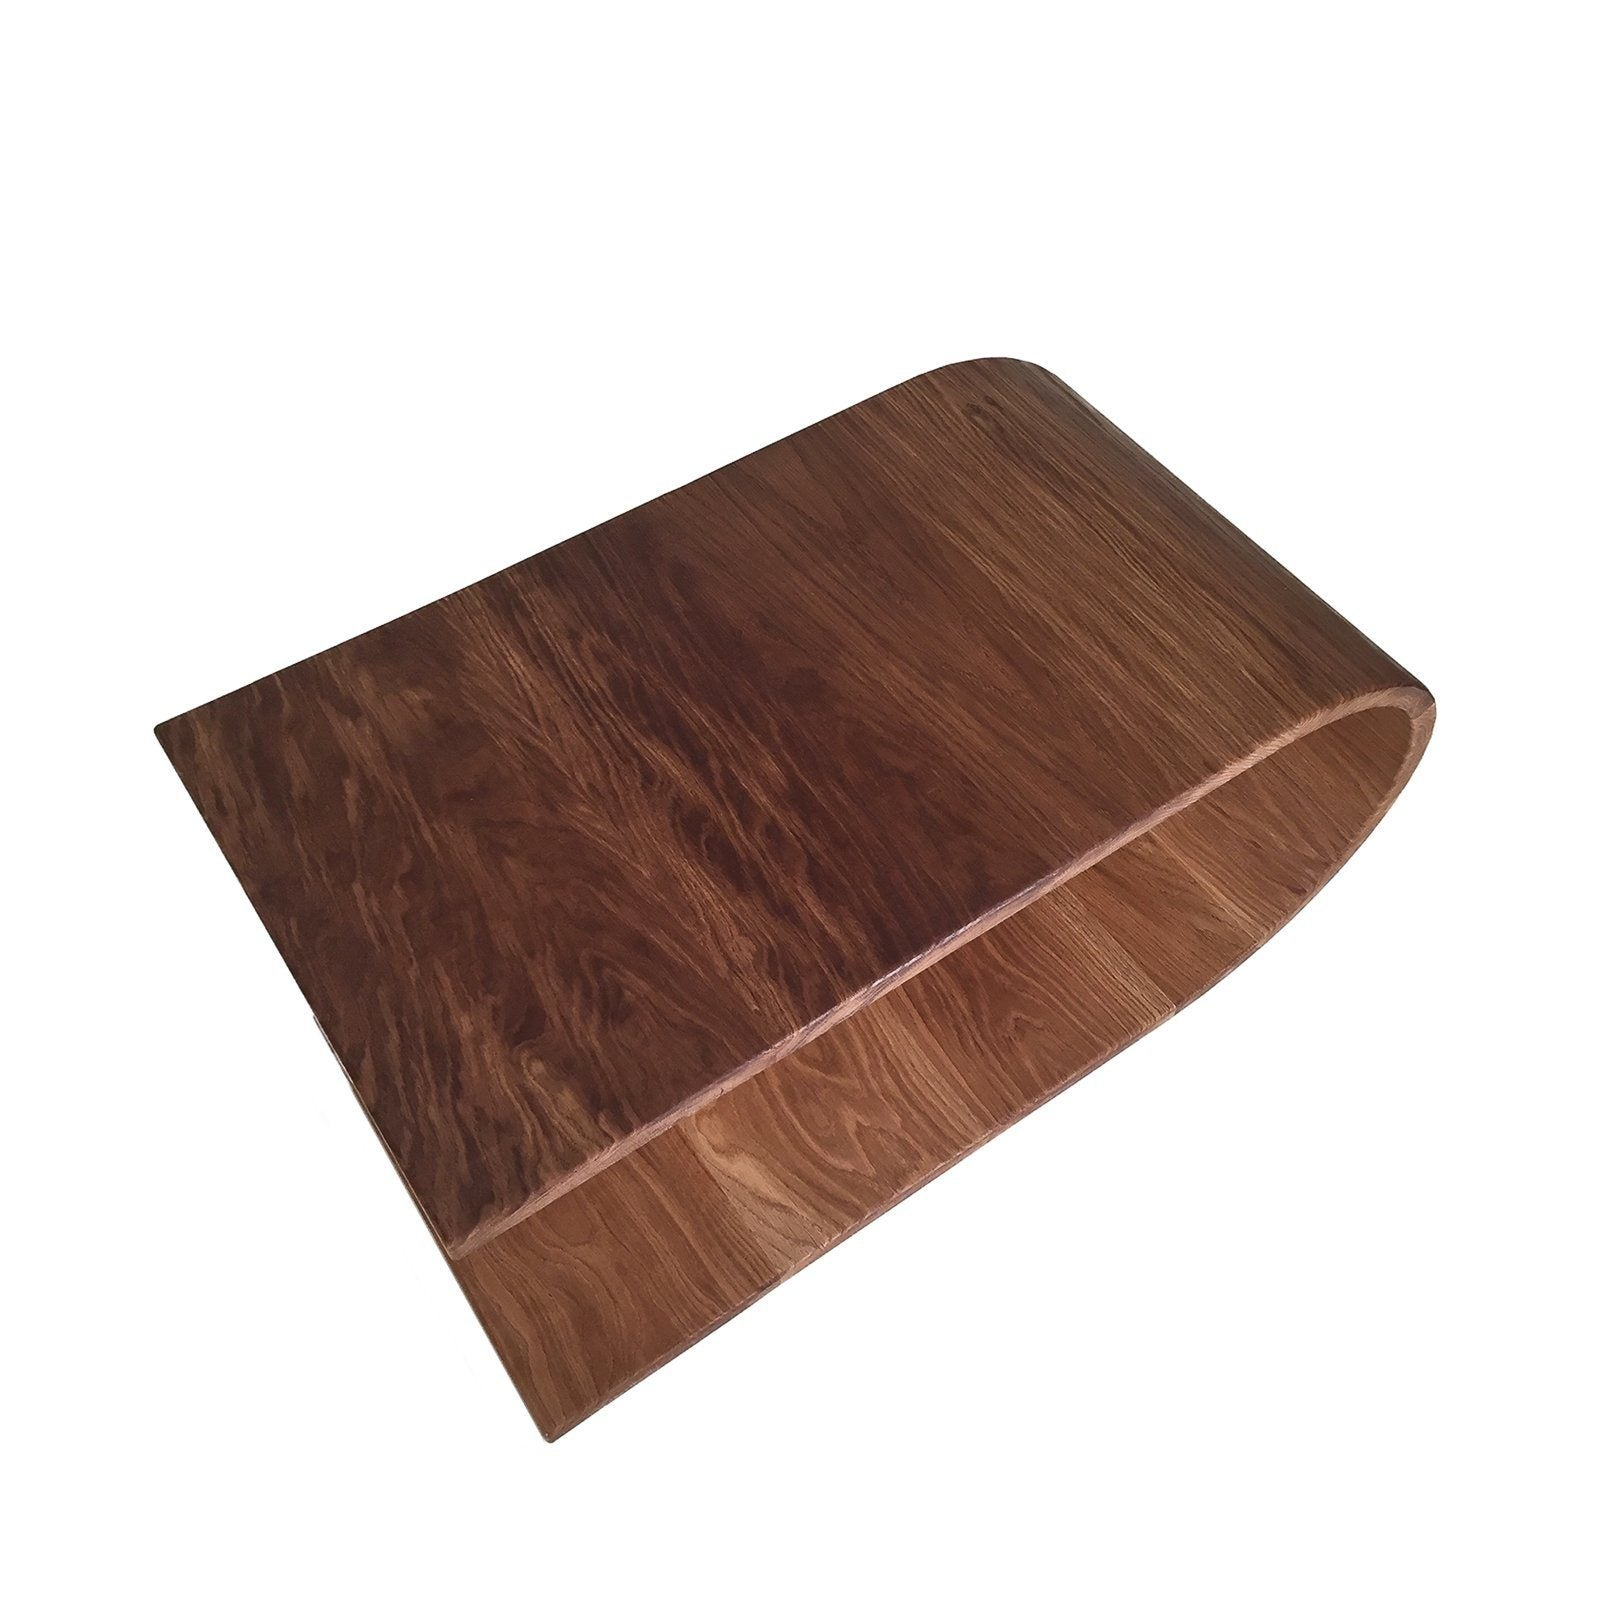 ... Tables U003e Coffee Table Rectangular   The Euclid Coffee Table By Peg  Woodworking ...